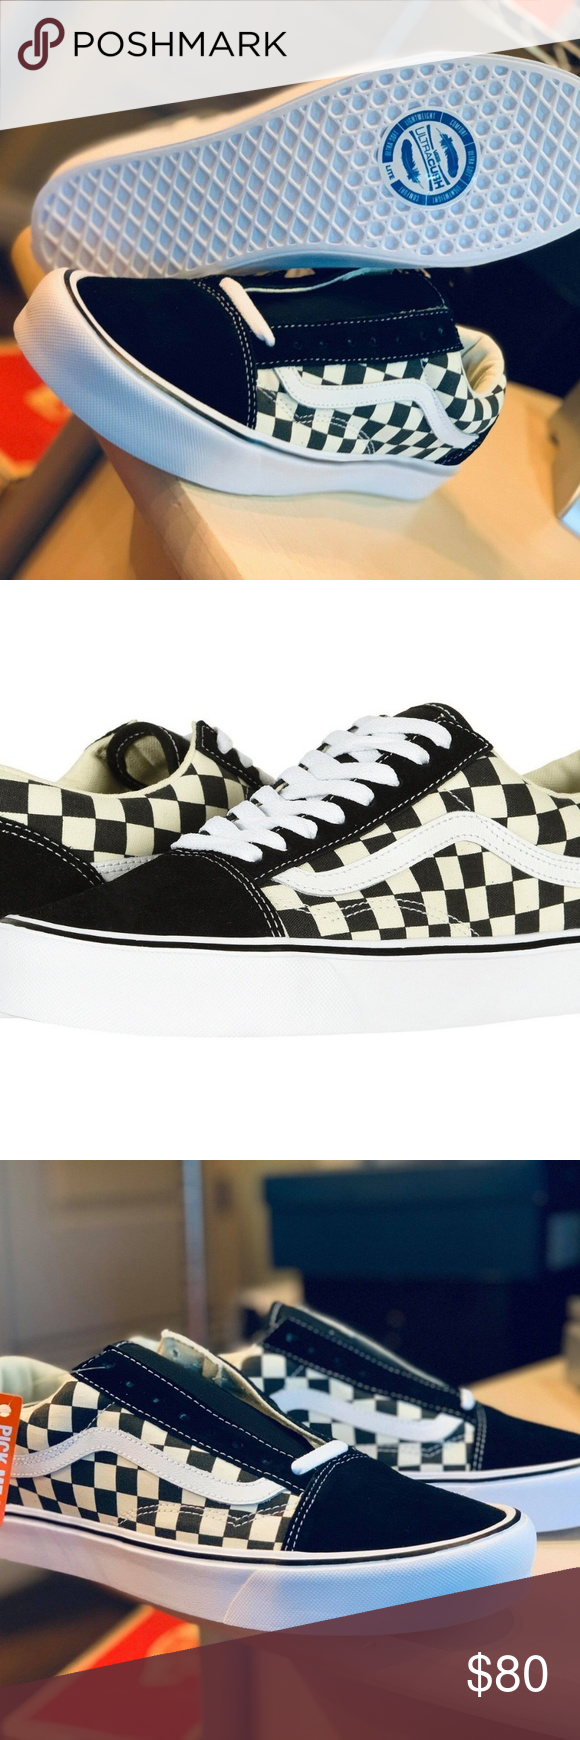 bc5976c941 Vans OLD SKOOL CHECKERBOARD LITE ULTRACUSH SKATE Give a nod to the past  while embracing the